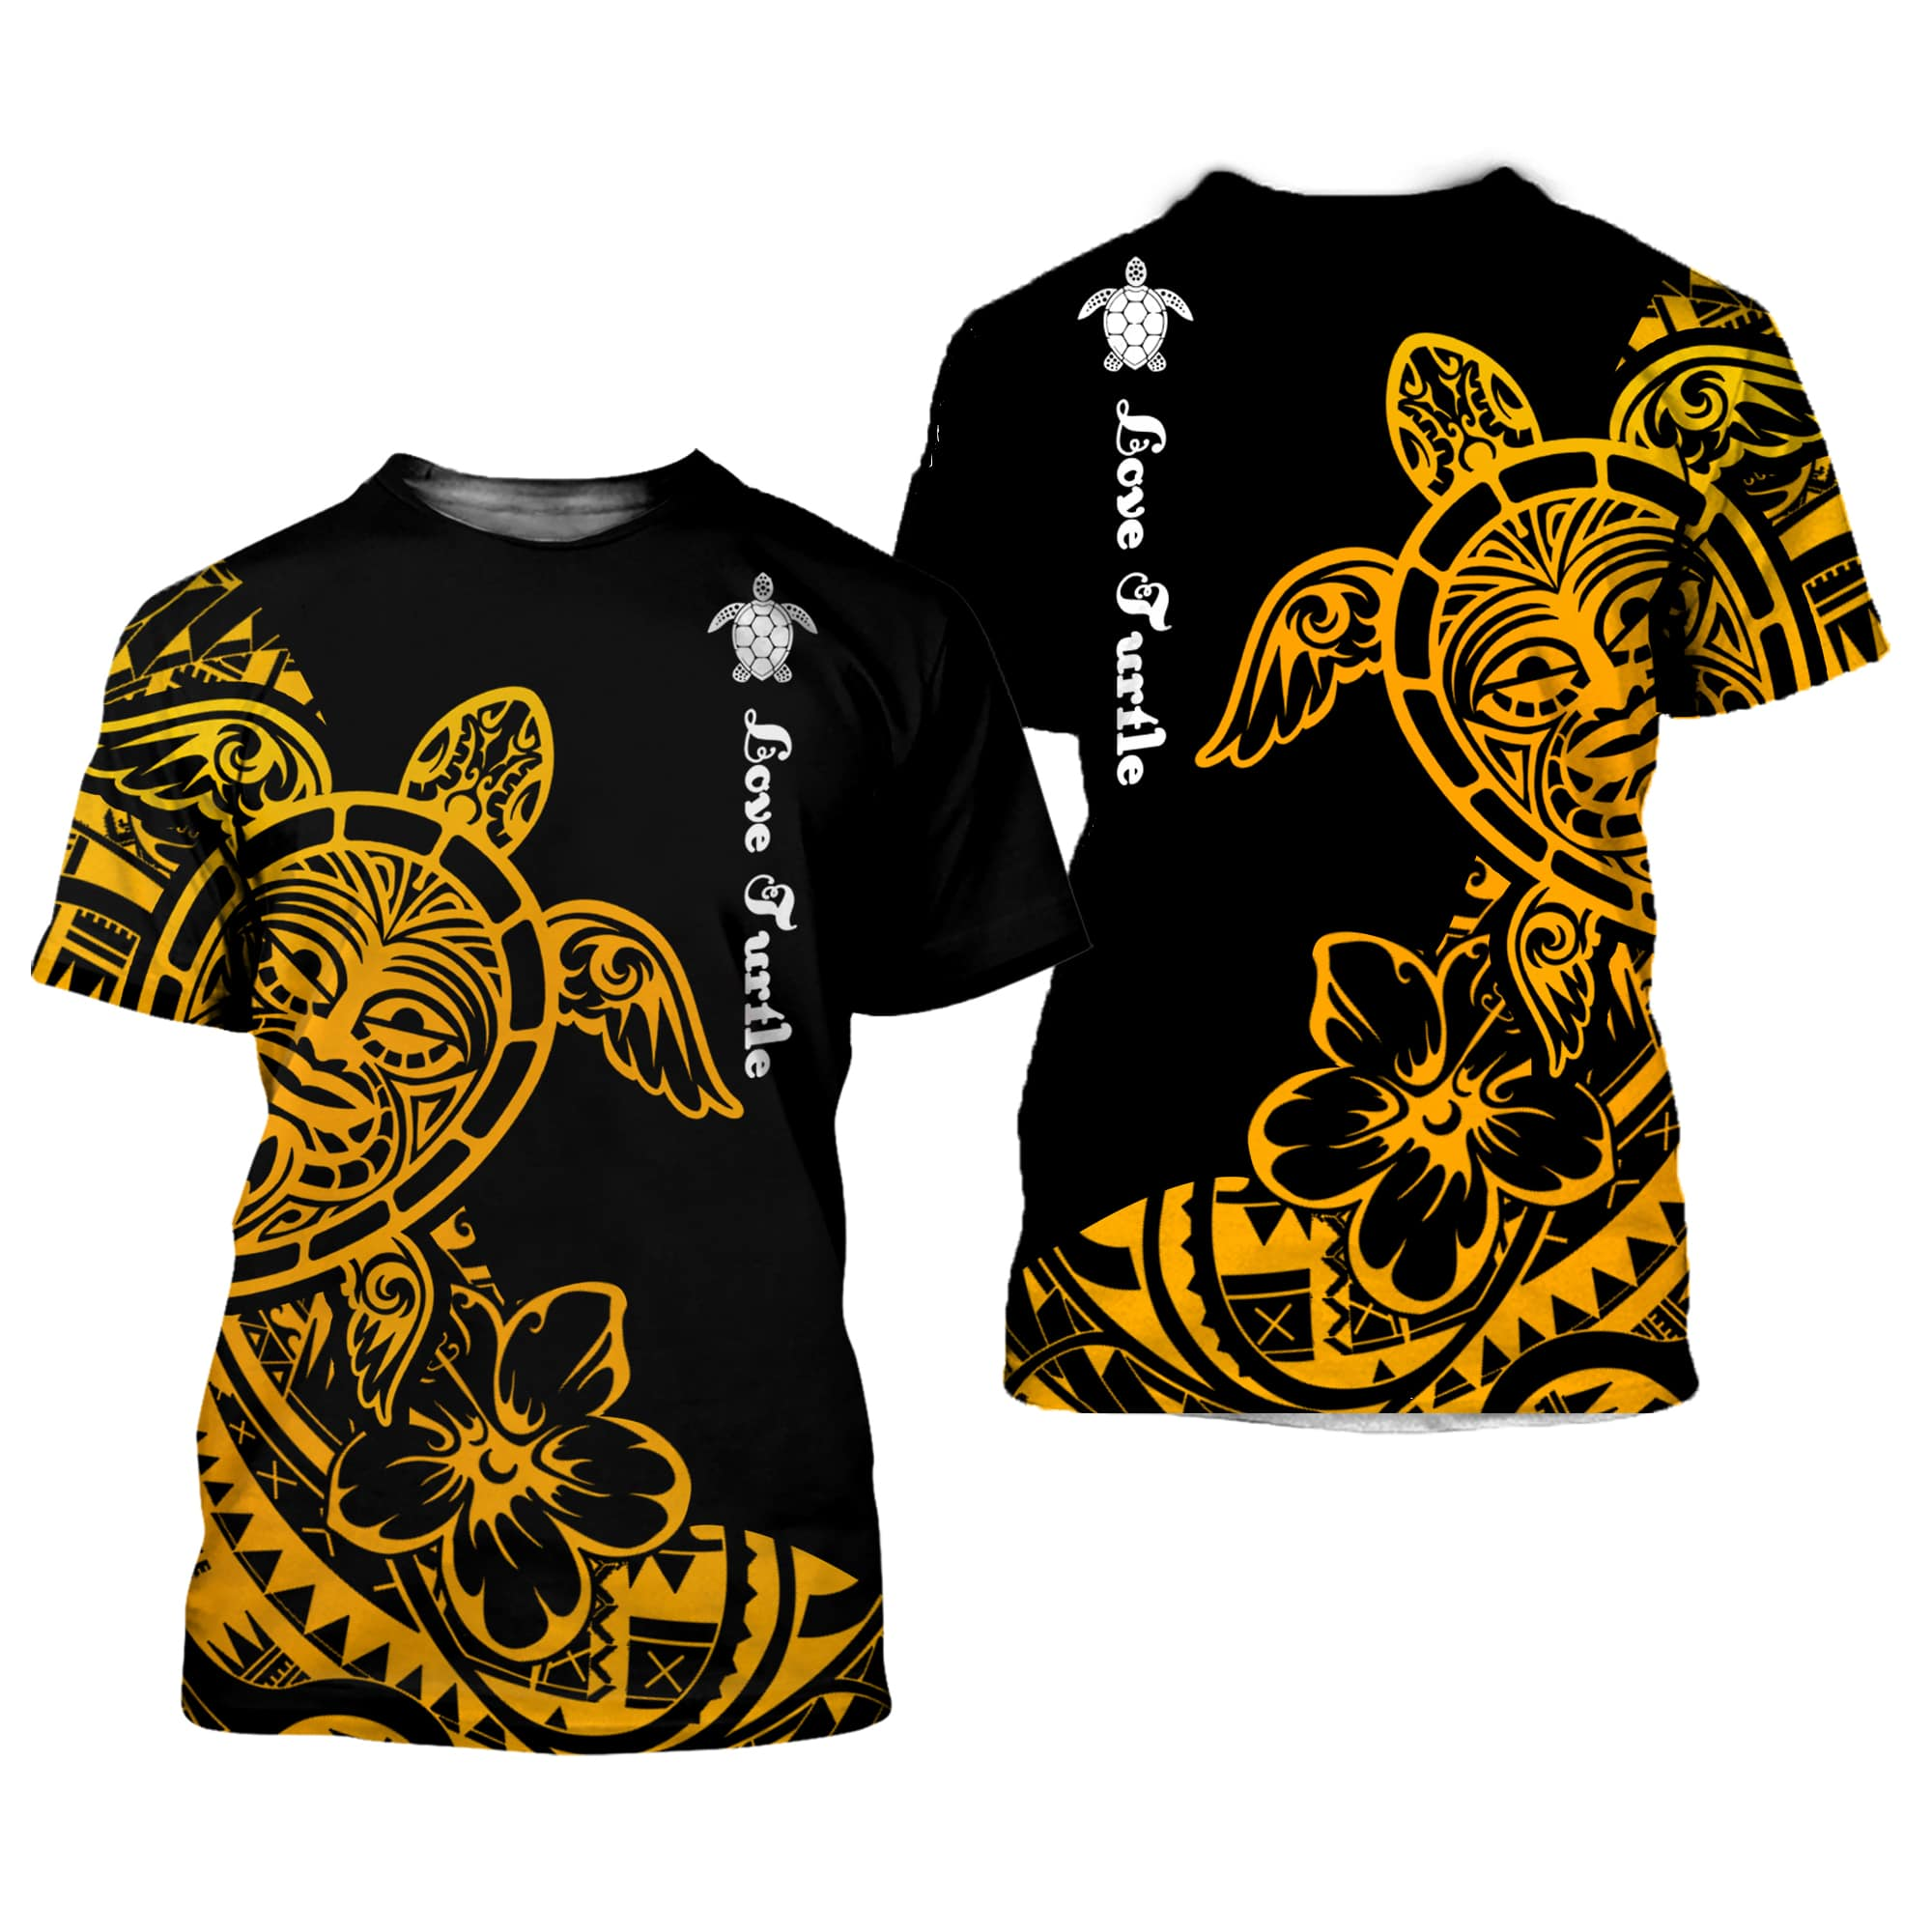 Polynesian Tattoo Sea Turtle 3D All Over Printed Shirts For Men And Women 06